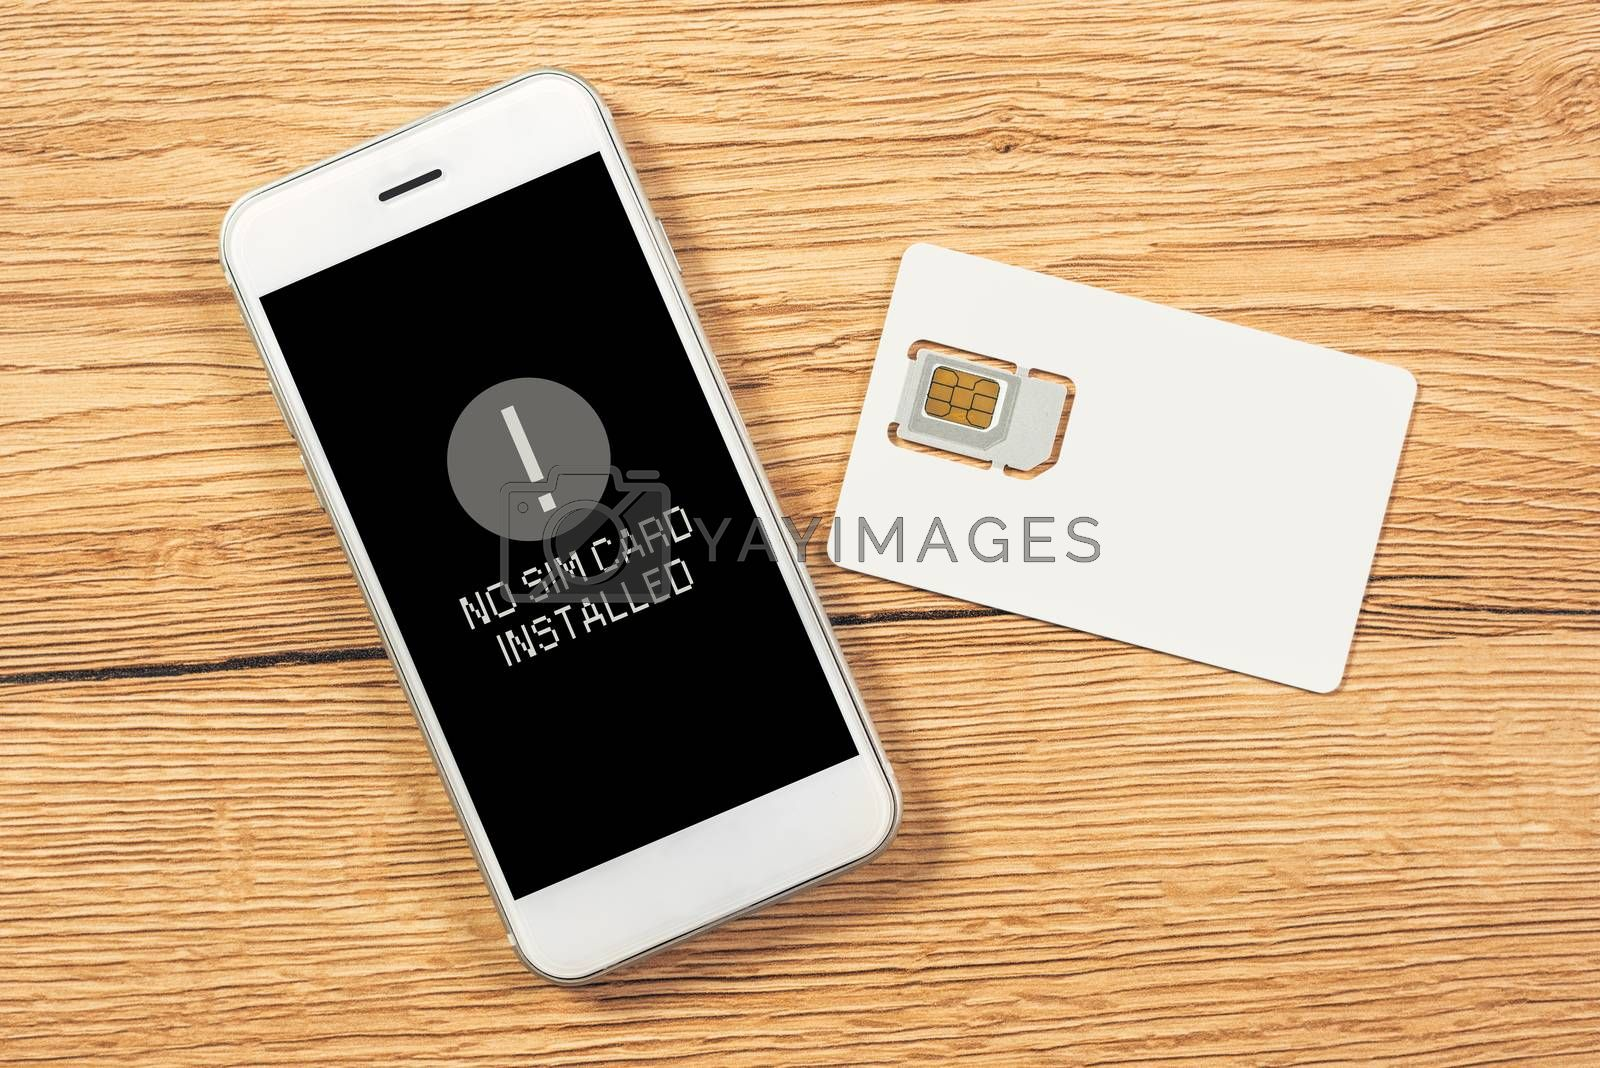 No SIM card installed notification on smartphone screen, top view mock up for telecommunication provider microchip with mobile phone on office desktop